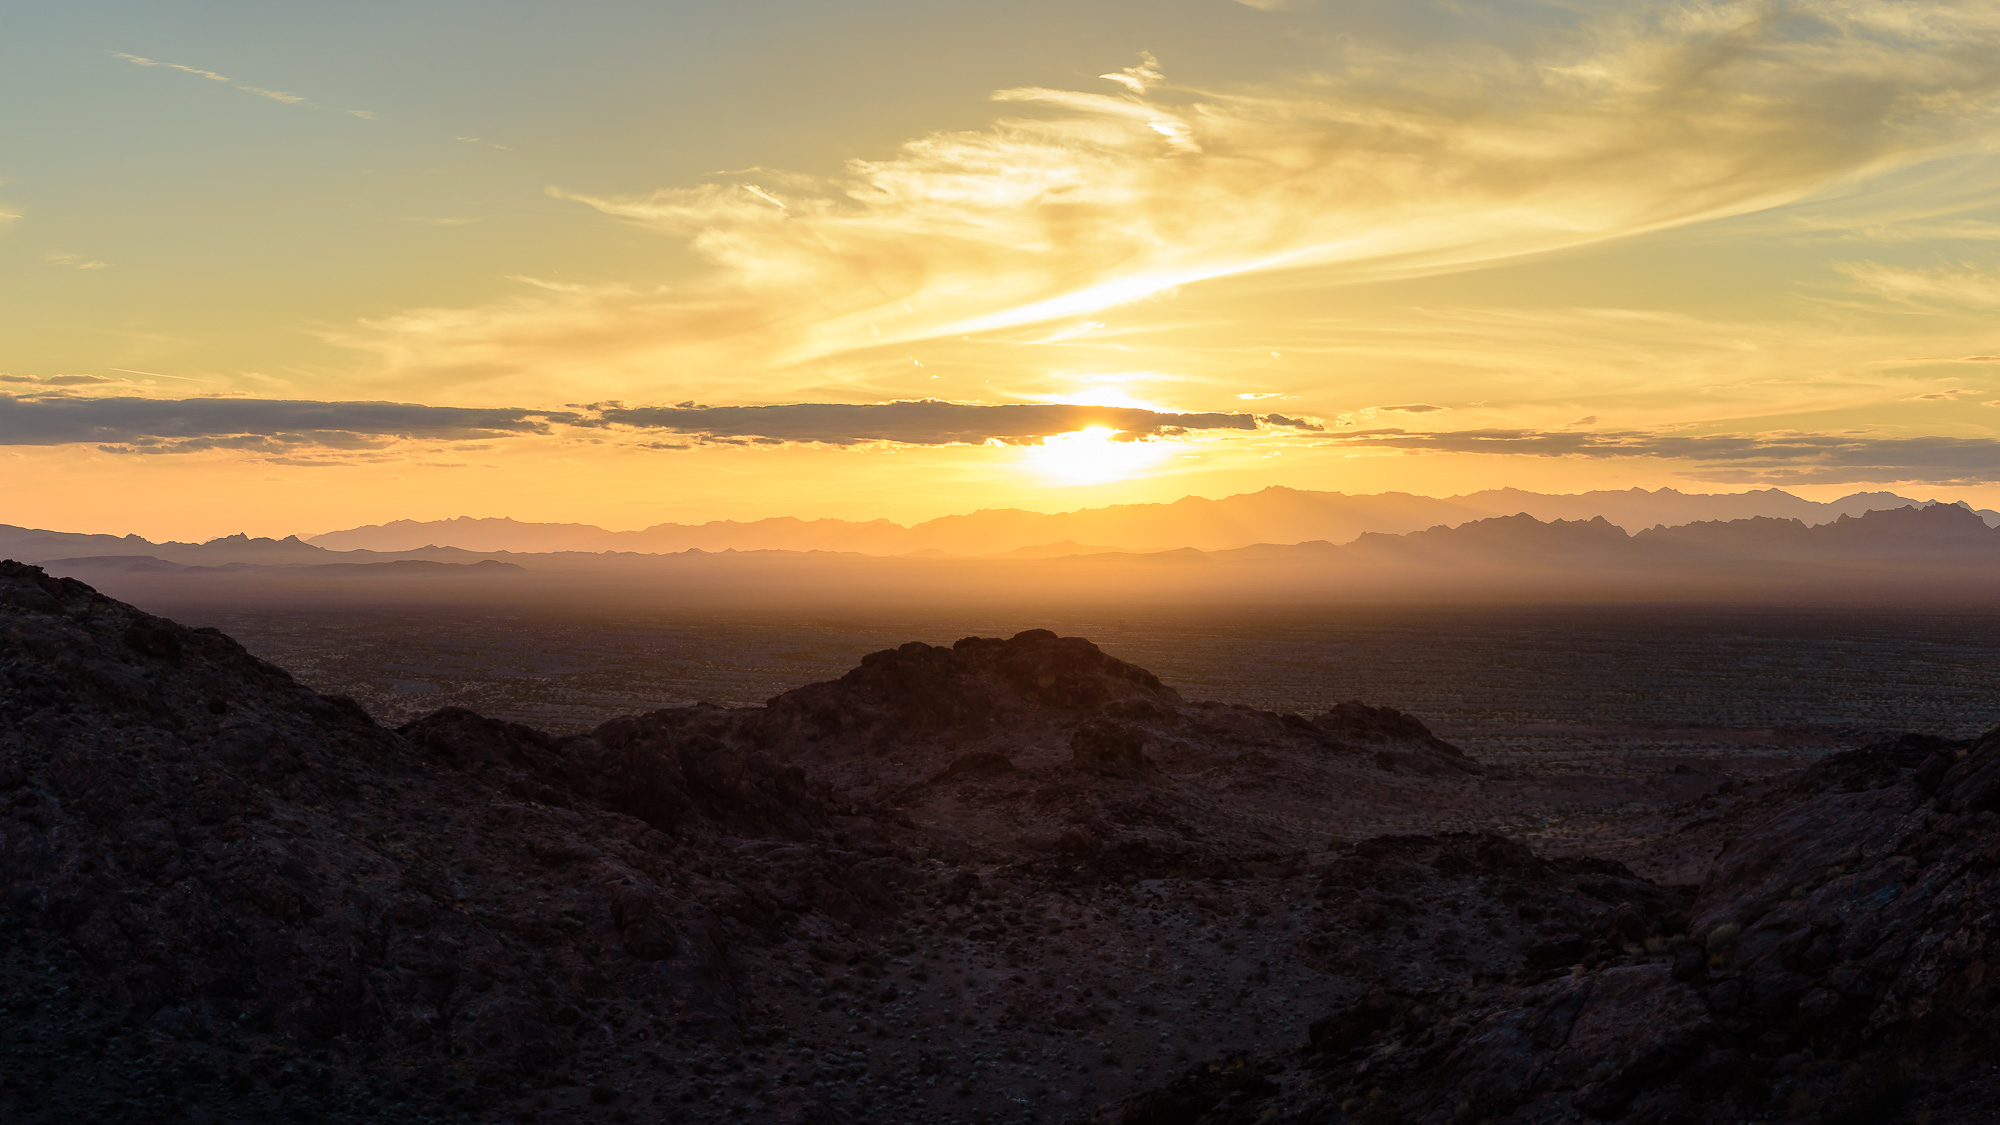 Looking into the Turtle Mountain Wilderness. Mojave Desert, CA